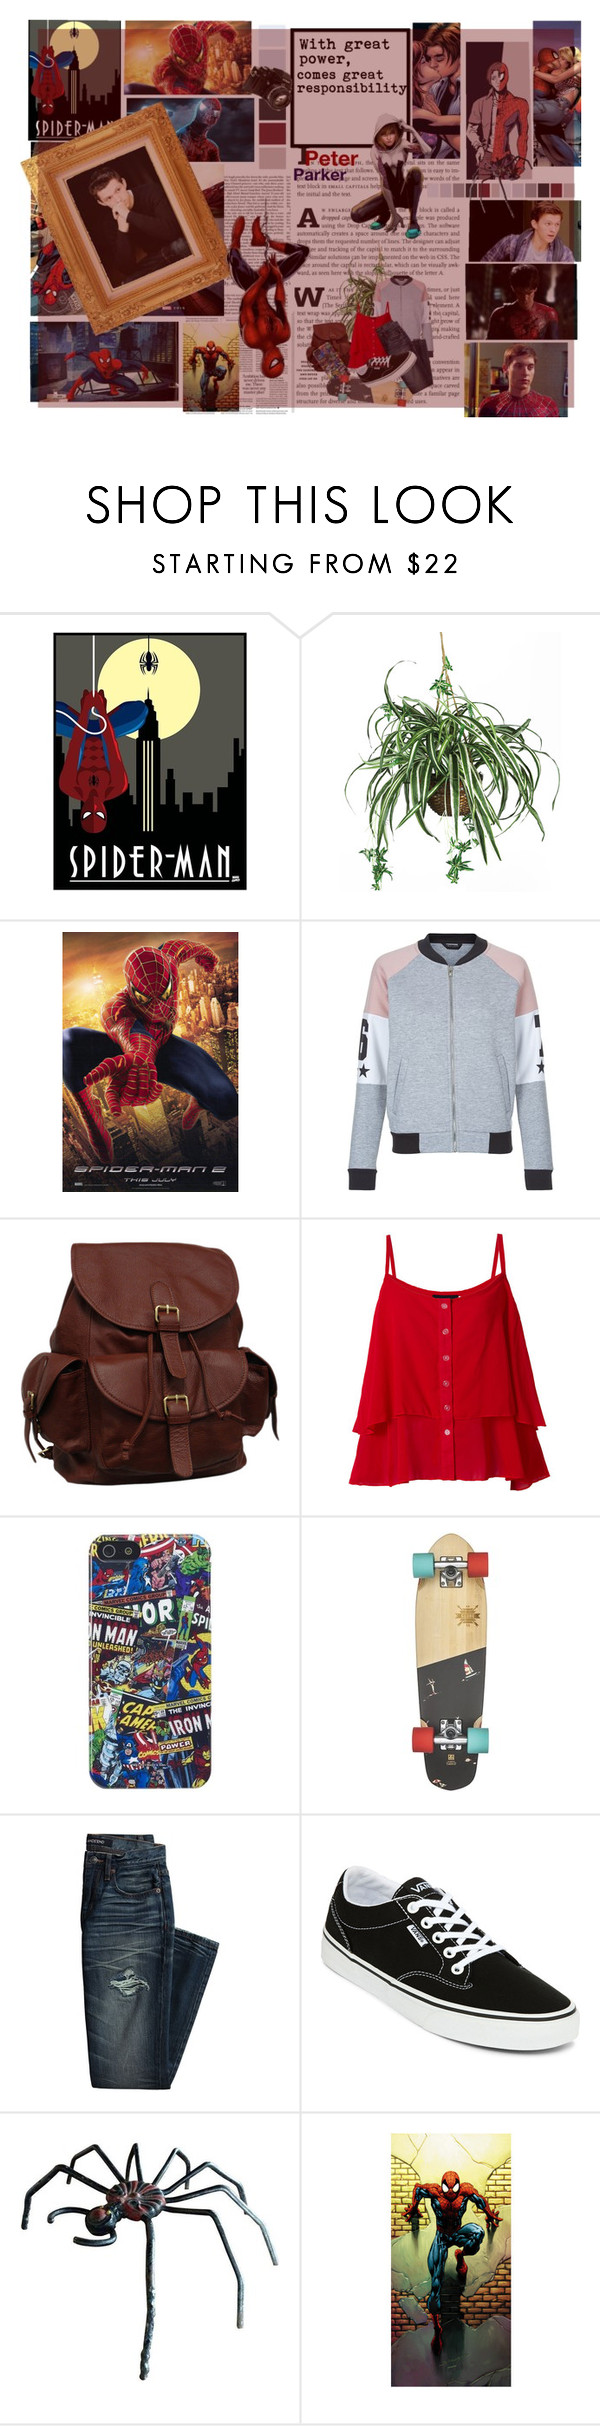 """01. Spiderman"" by buyureyes ❤ liked on Polyvore featuring Marvel, New Look, AmeriLeather, Marvel Comics, Canvas by Lands' End, Vans, Nikon, RoomMates Decor and superheroes"